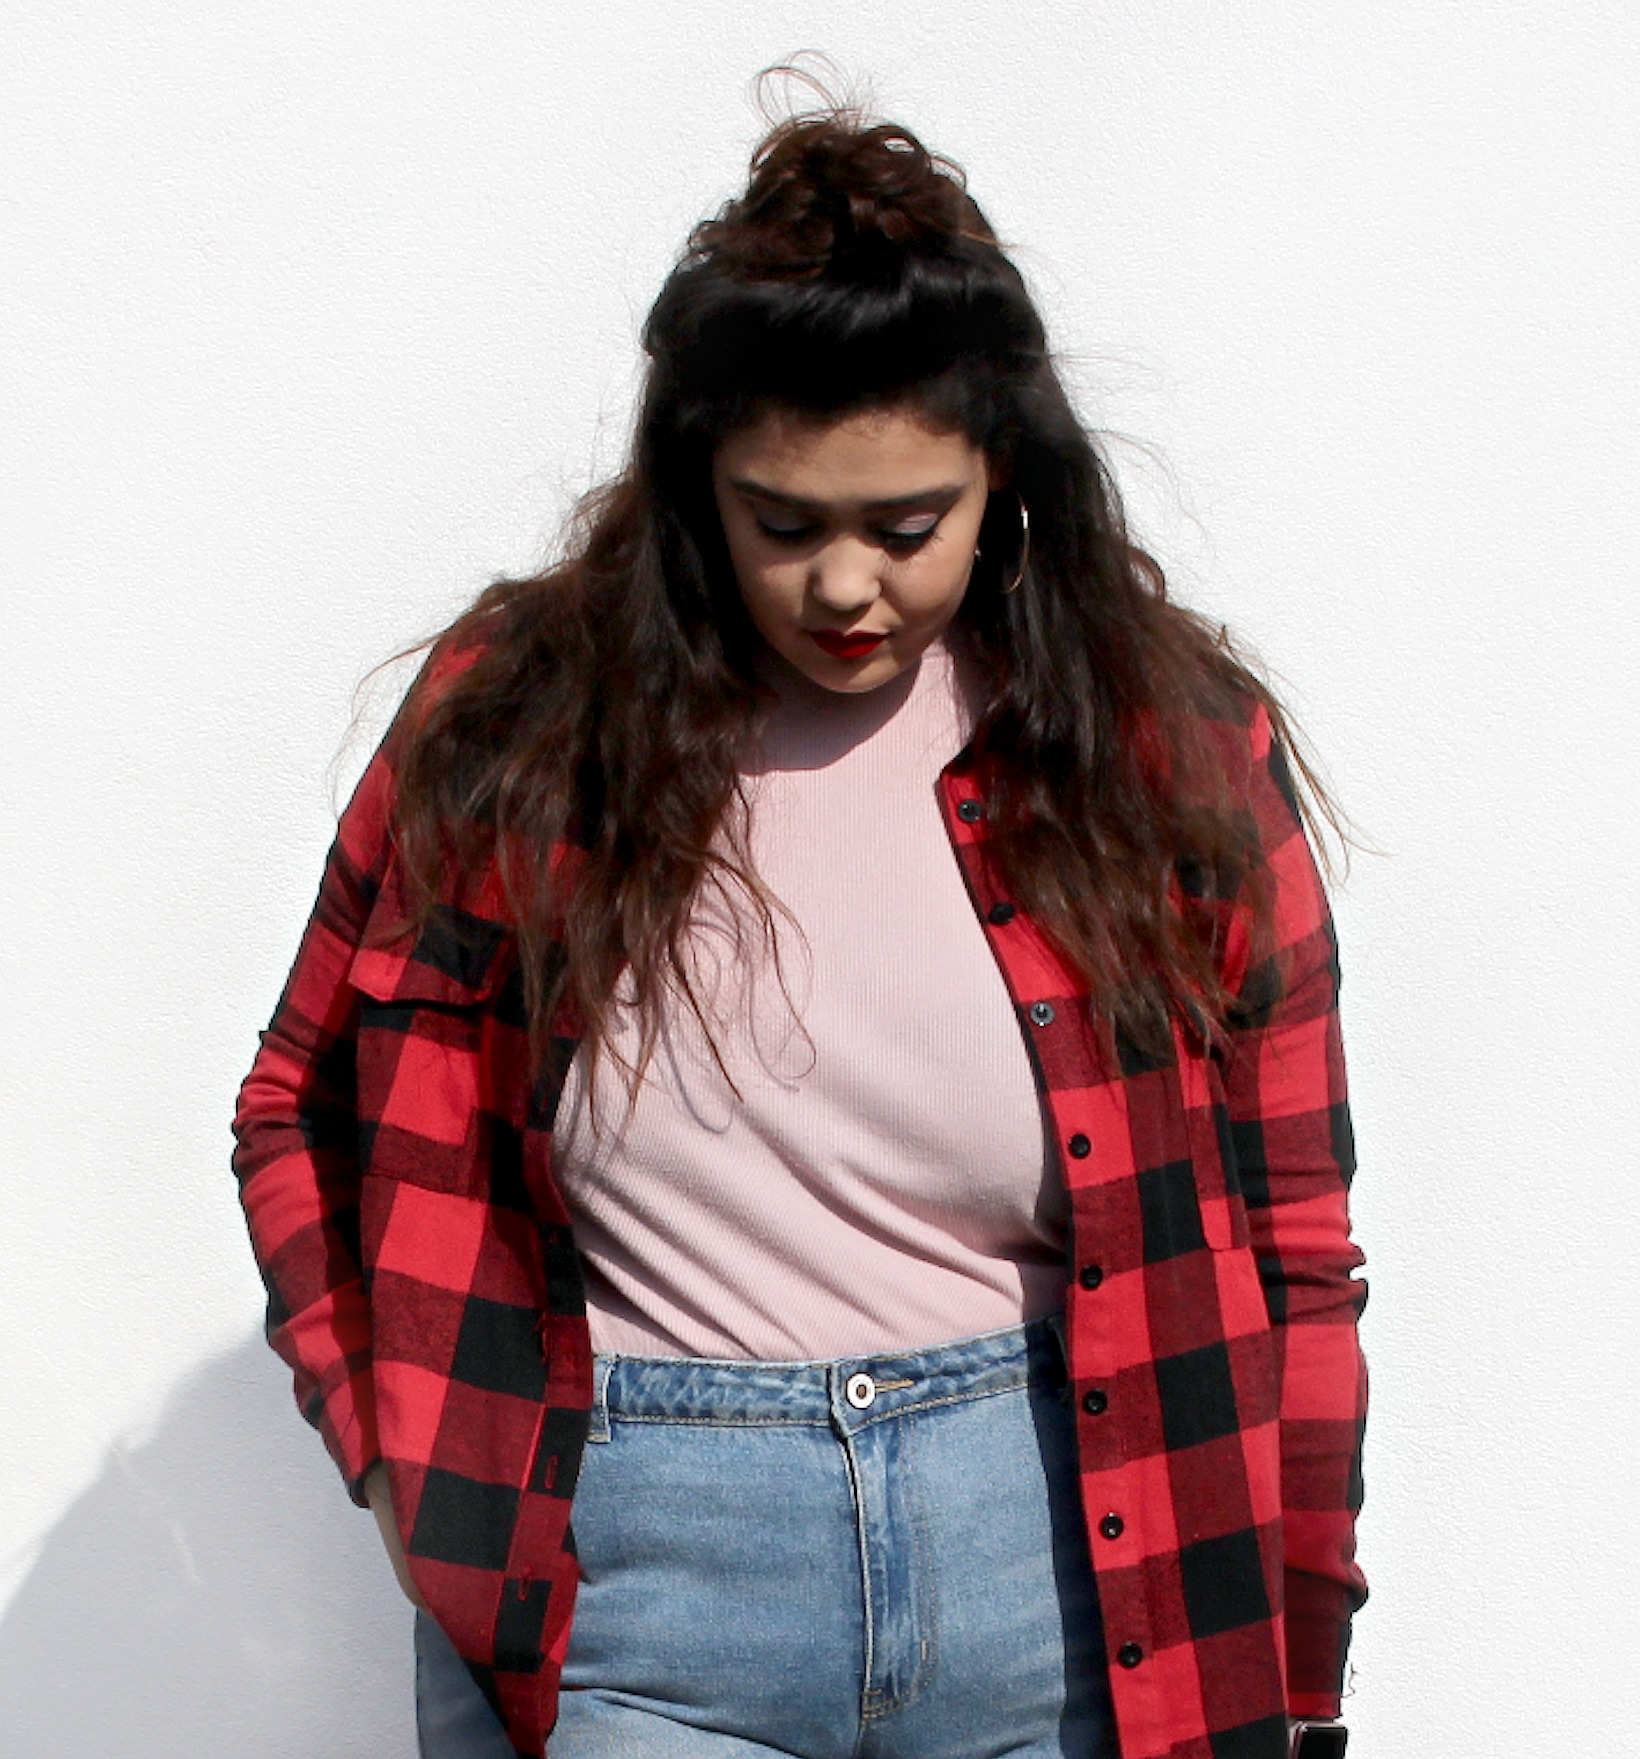 Mom Jeans - Je suis une rebelle blog mode grande taille & lifestyle